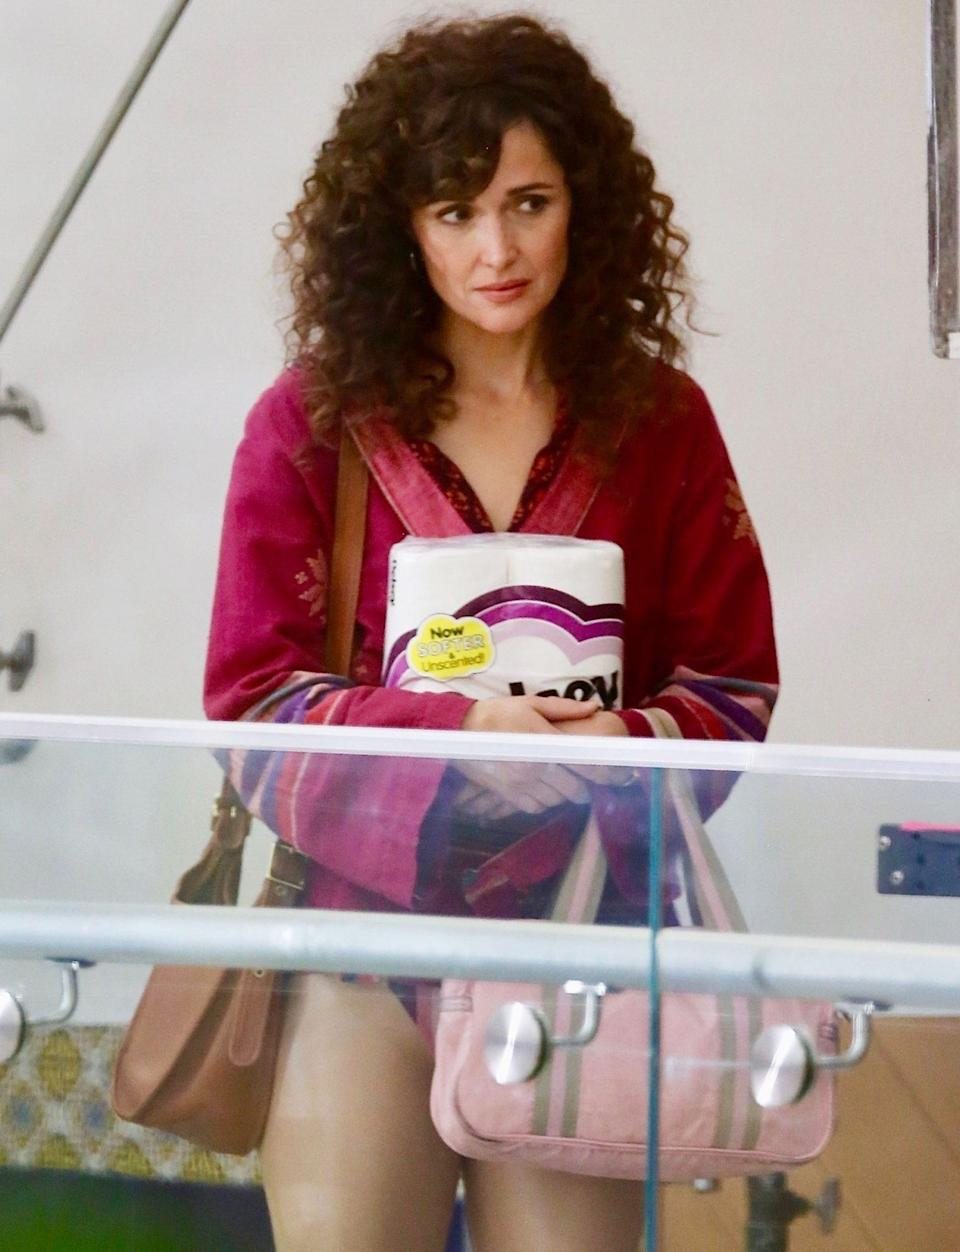 <p>Rose Byrne holds a package of toilet paper as she and costar Paul Sparks (not pictured) film scenes for <em>Physical</em> at a Los Angeles strip mall on Tuesday.</p>